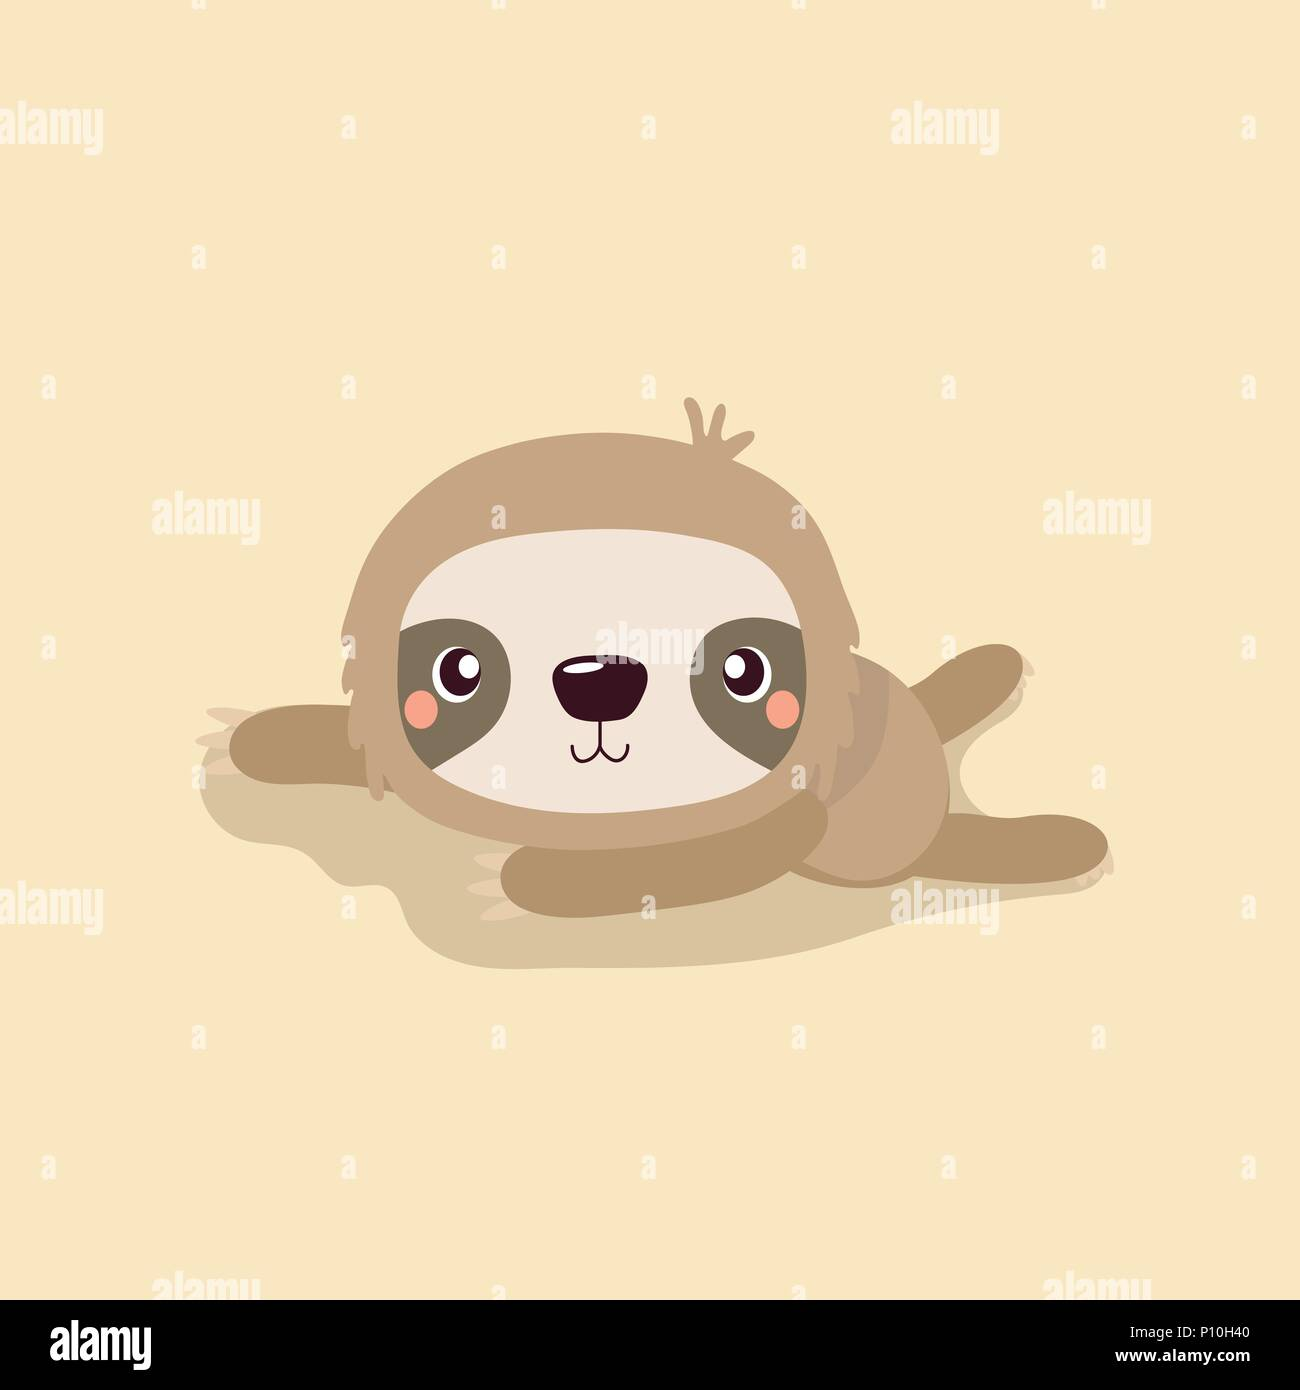 Cartoon Illustration Funny And Cute Sloth On Pastel Background Stock Vector Image Art Alamy